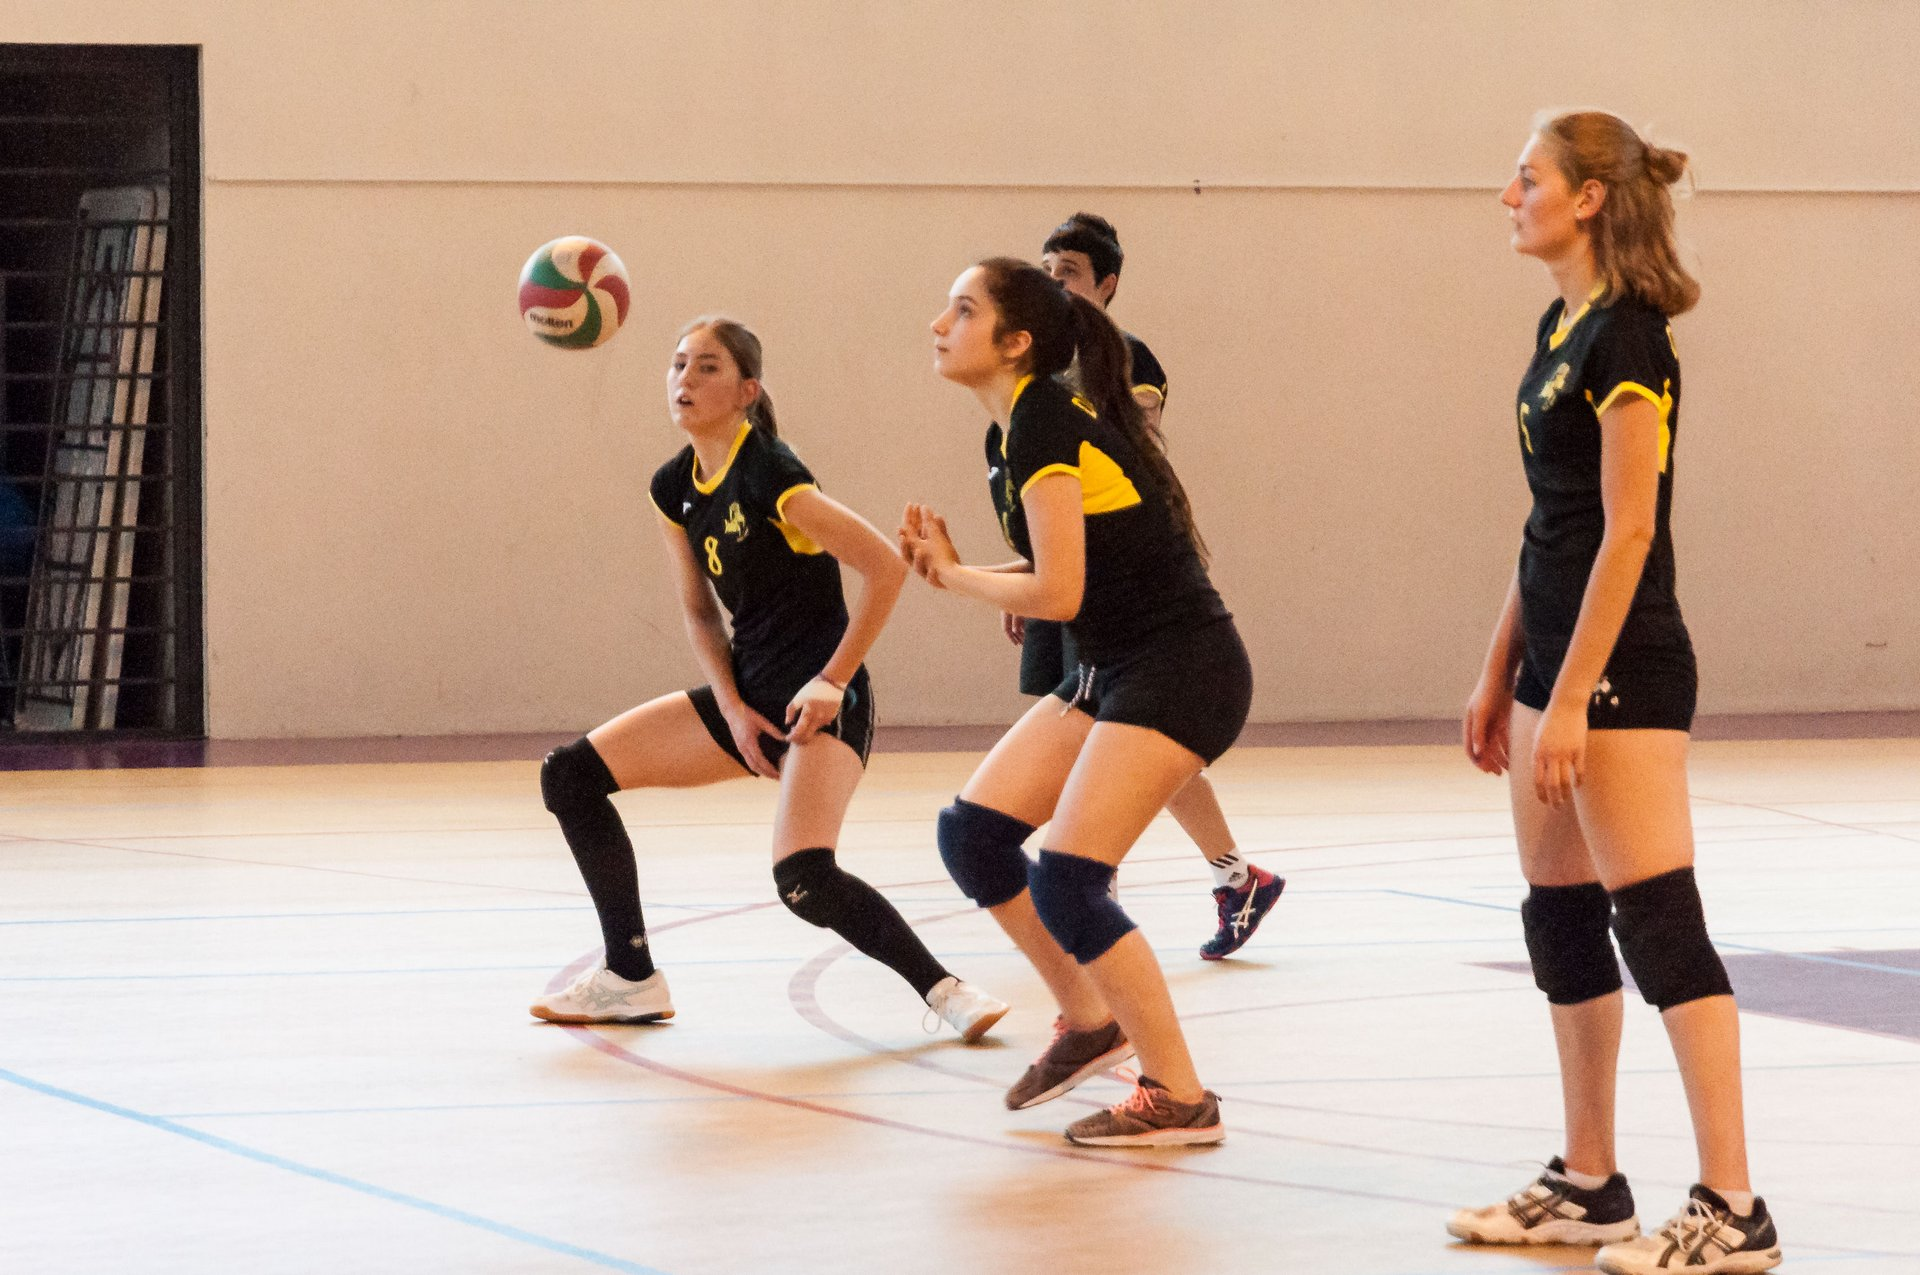 08_Volley_09_I. DURAND -  4